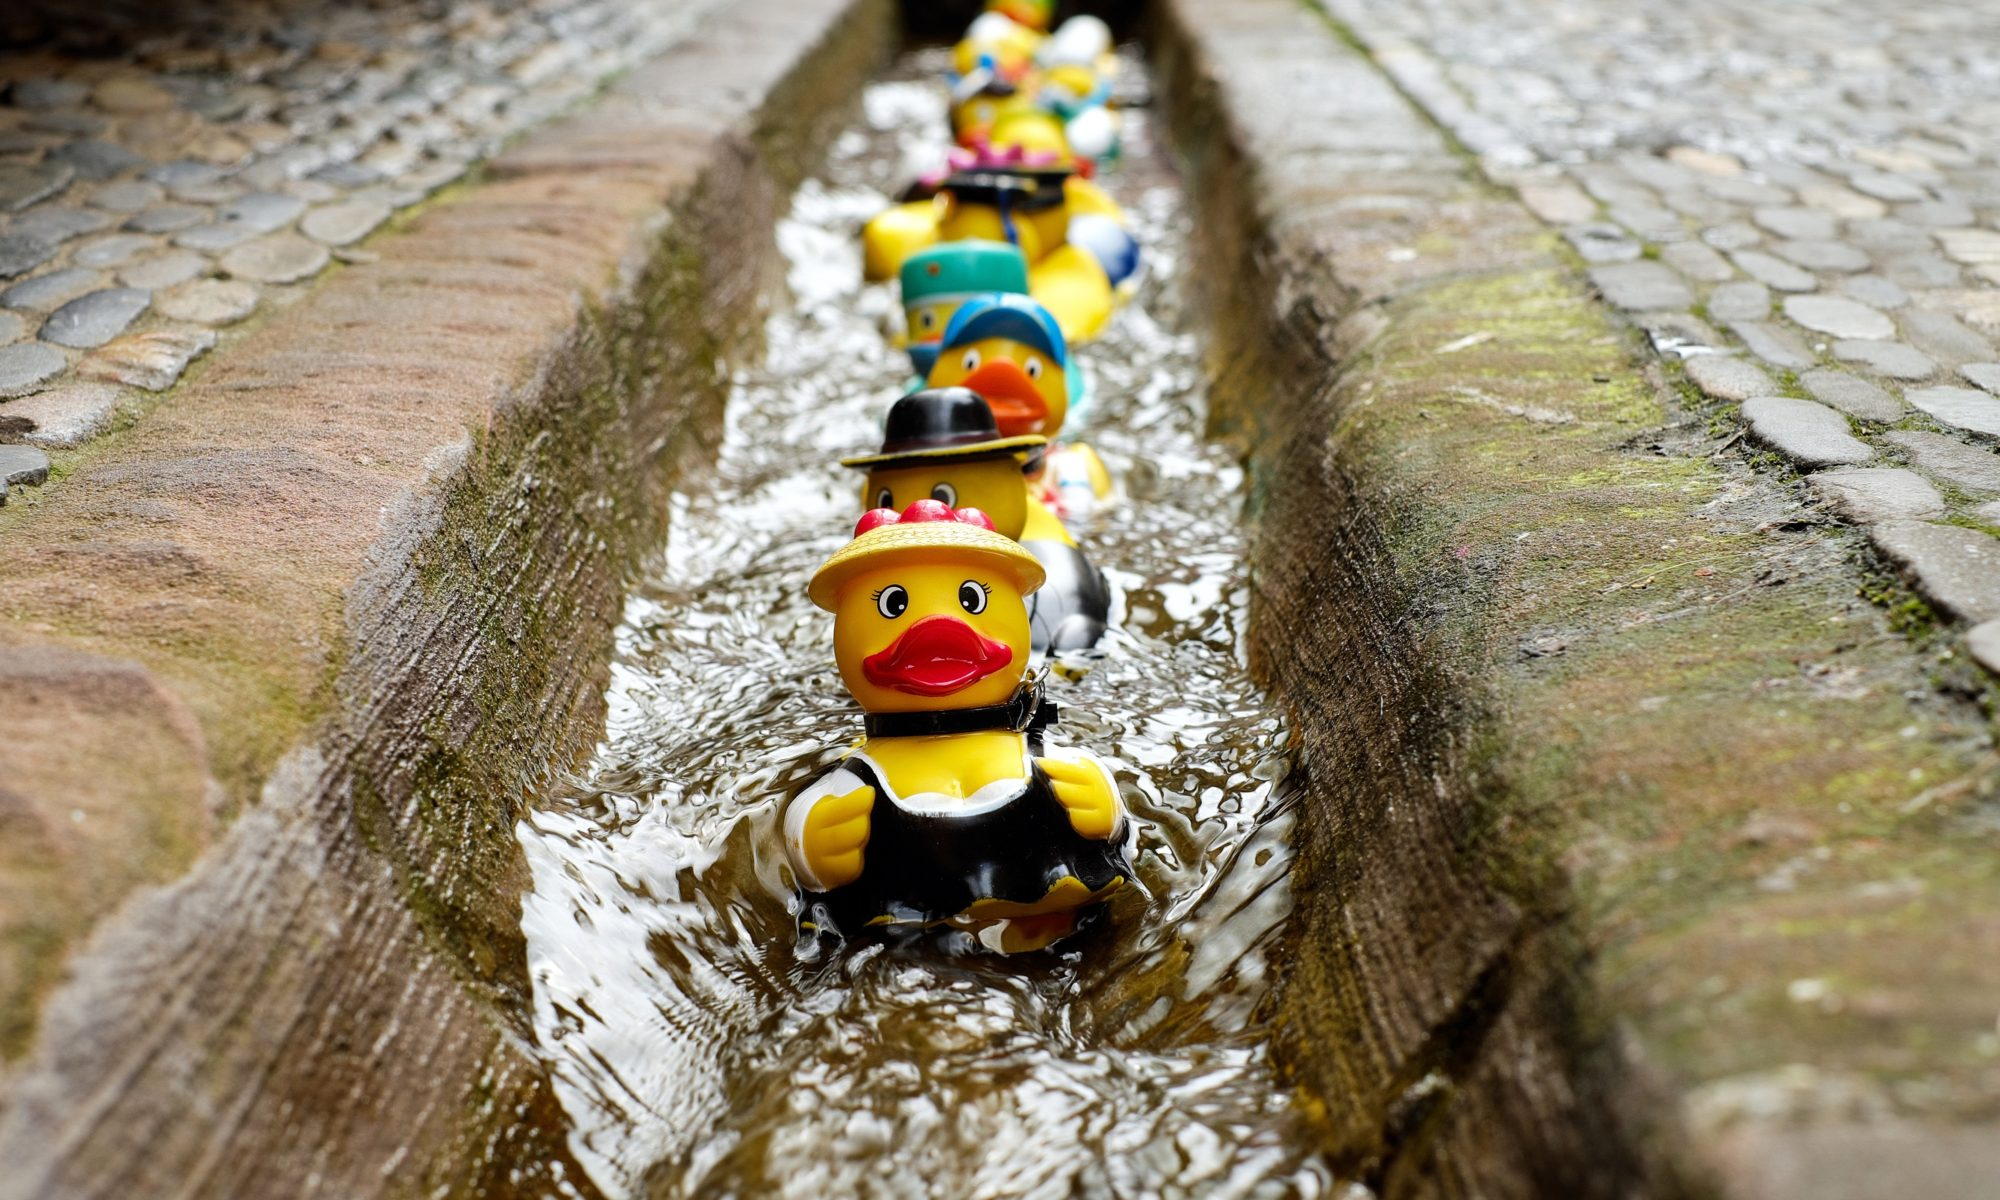 Rubber ducks floating down the water in the summer